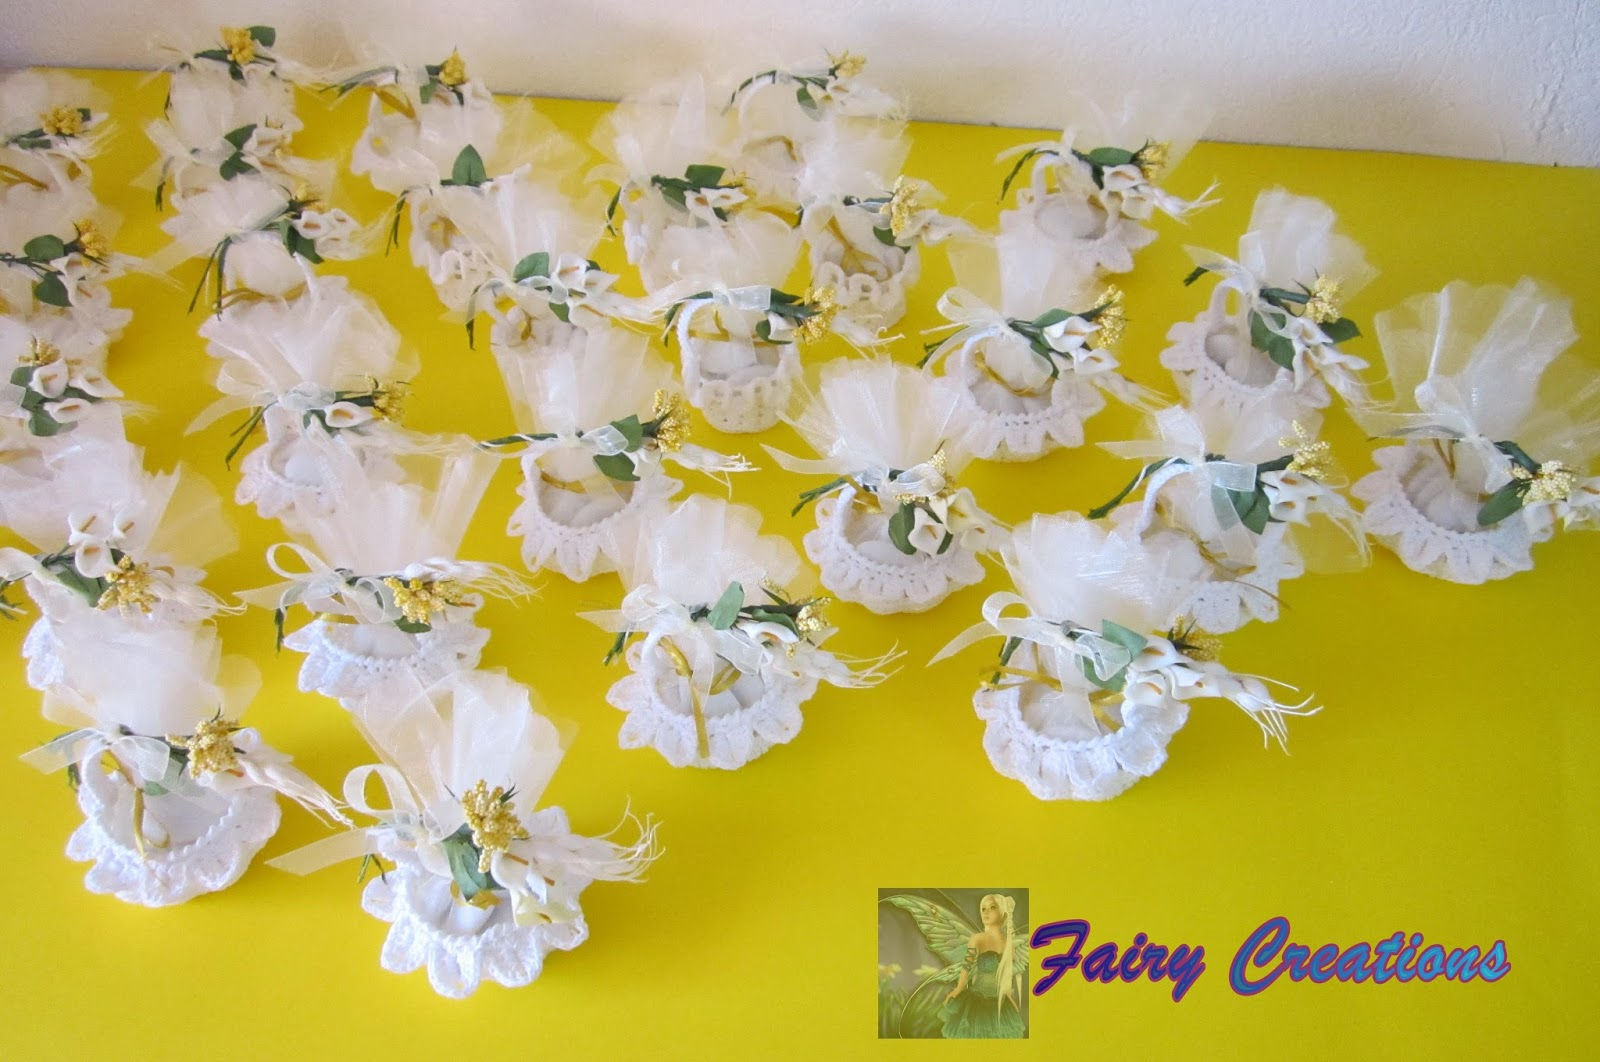 Super fairy creations: bomboniere all'uncinetto, cestini all'uncinetto YA22